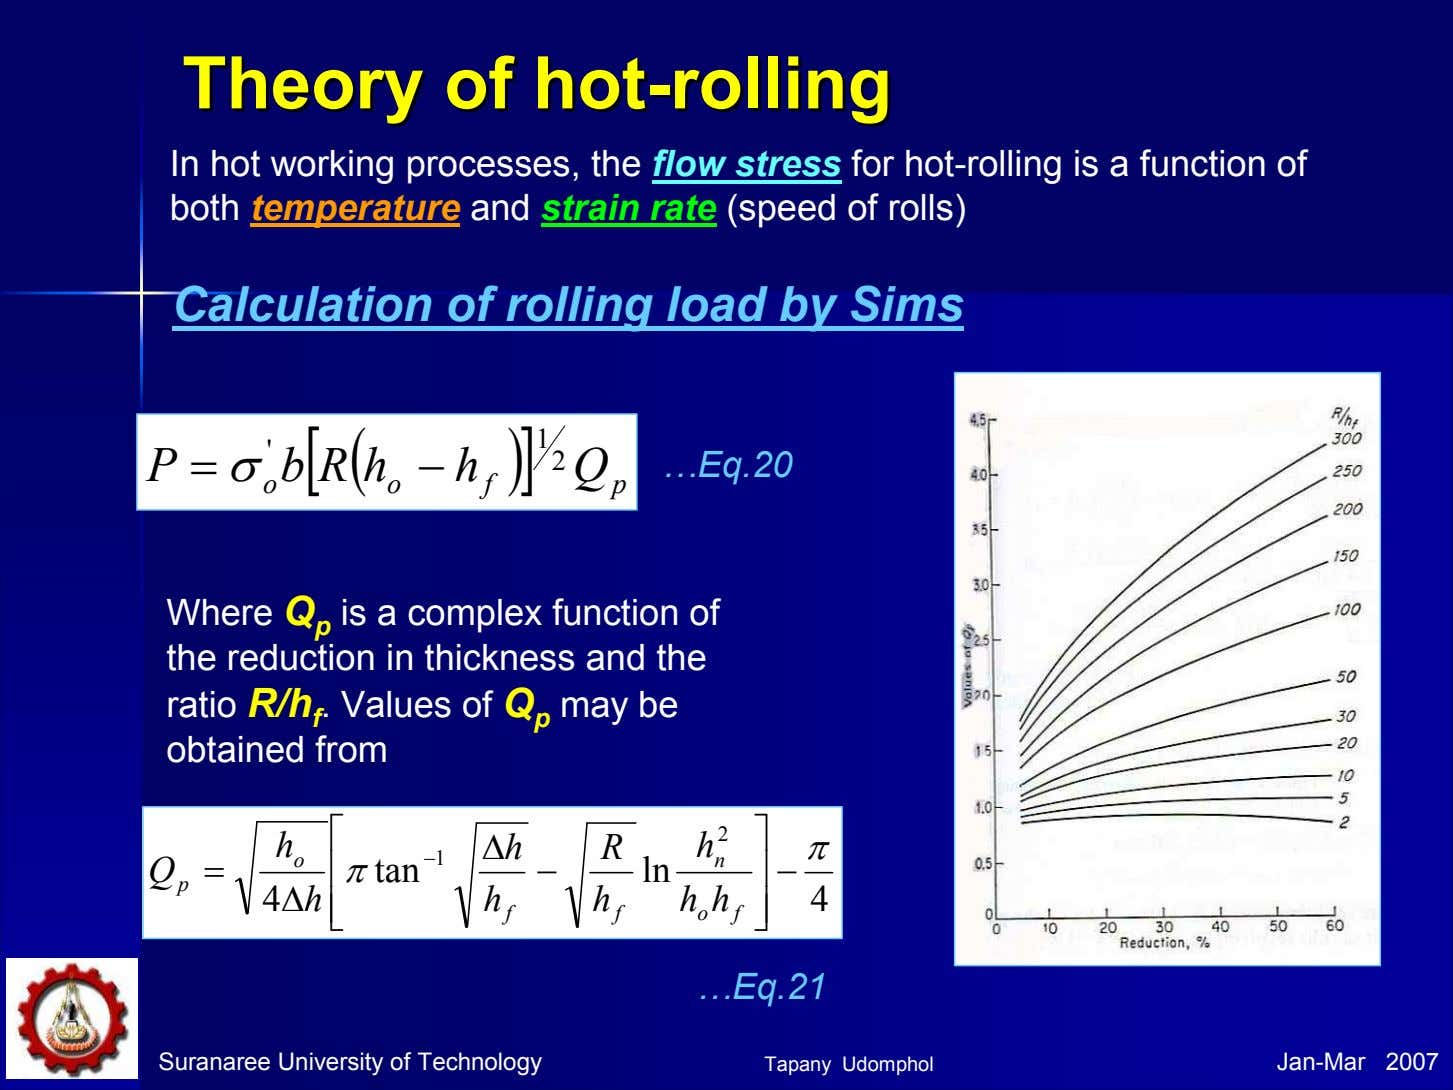 TheoryTheory ofof hothot--rollingrolling In hot working processes, the flow stress for hot-rolling is a function